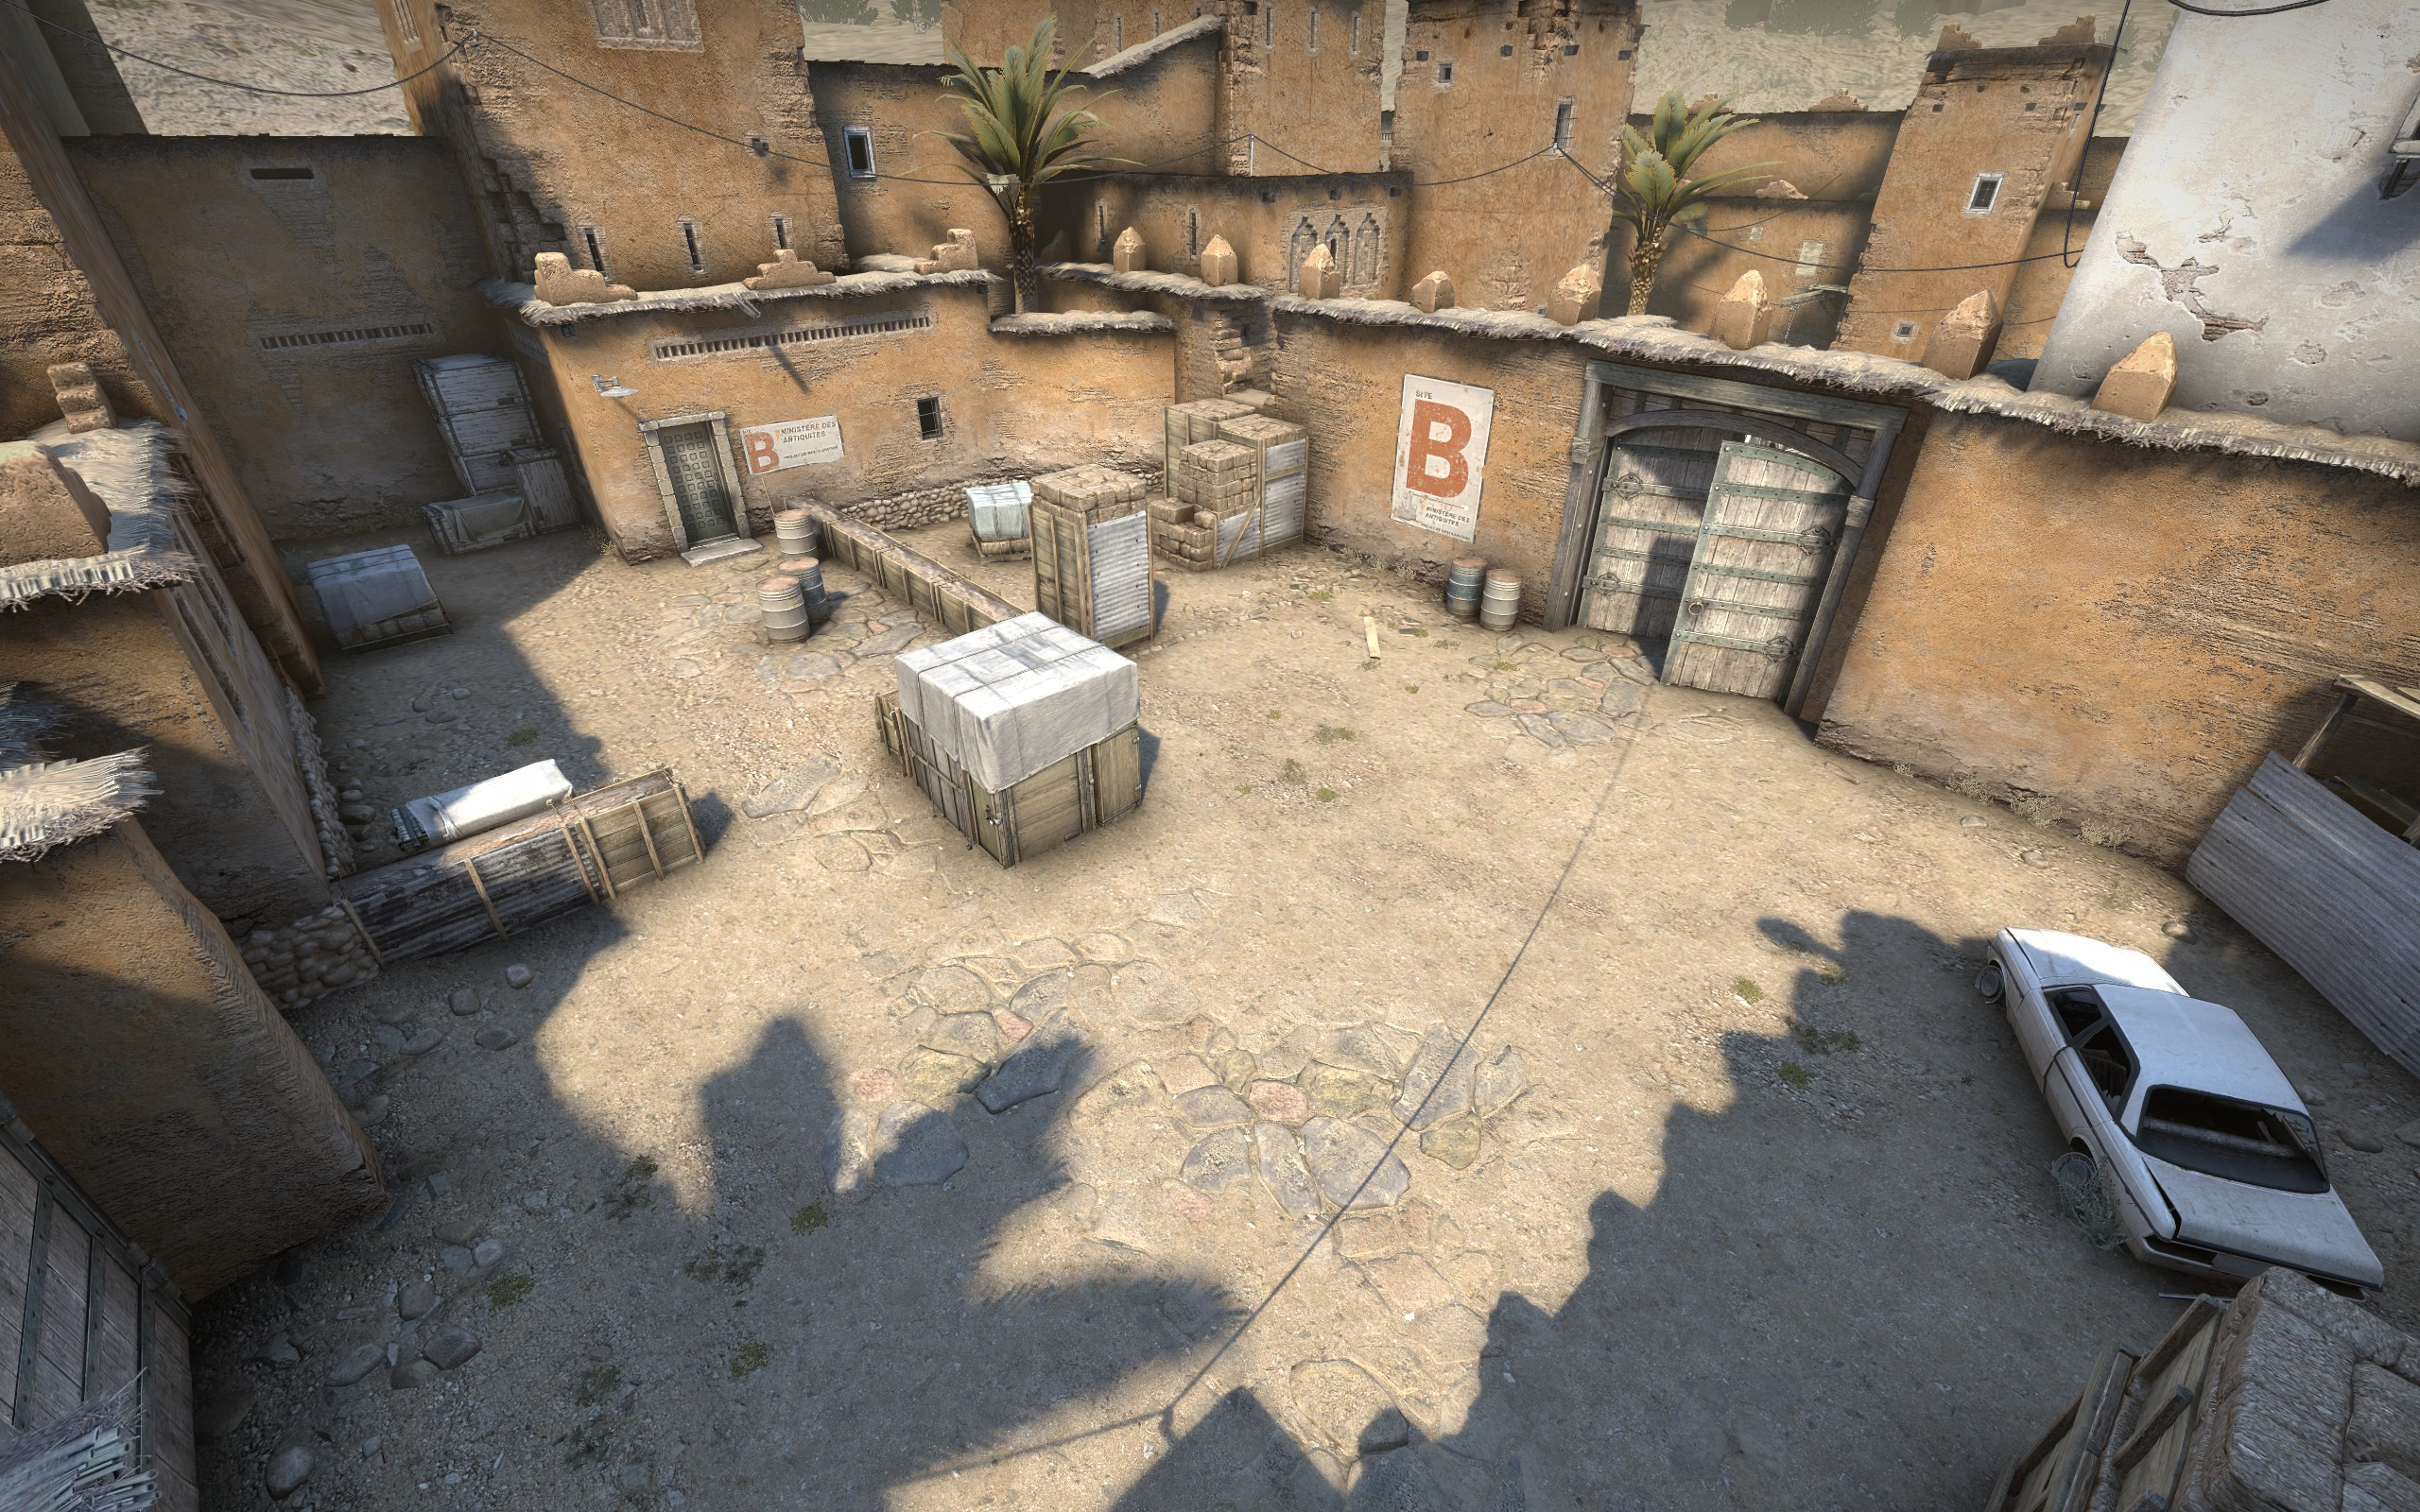 counter-strike go dust2